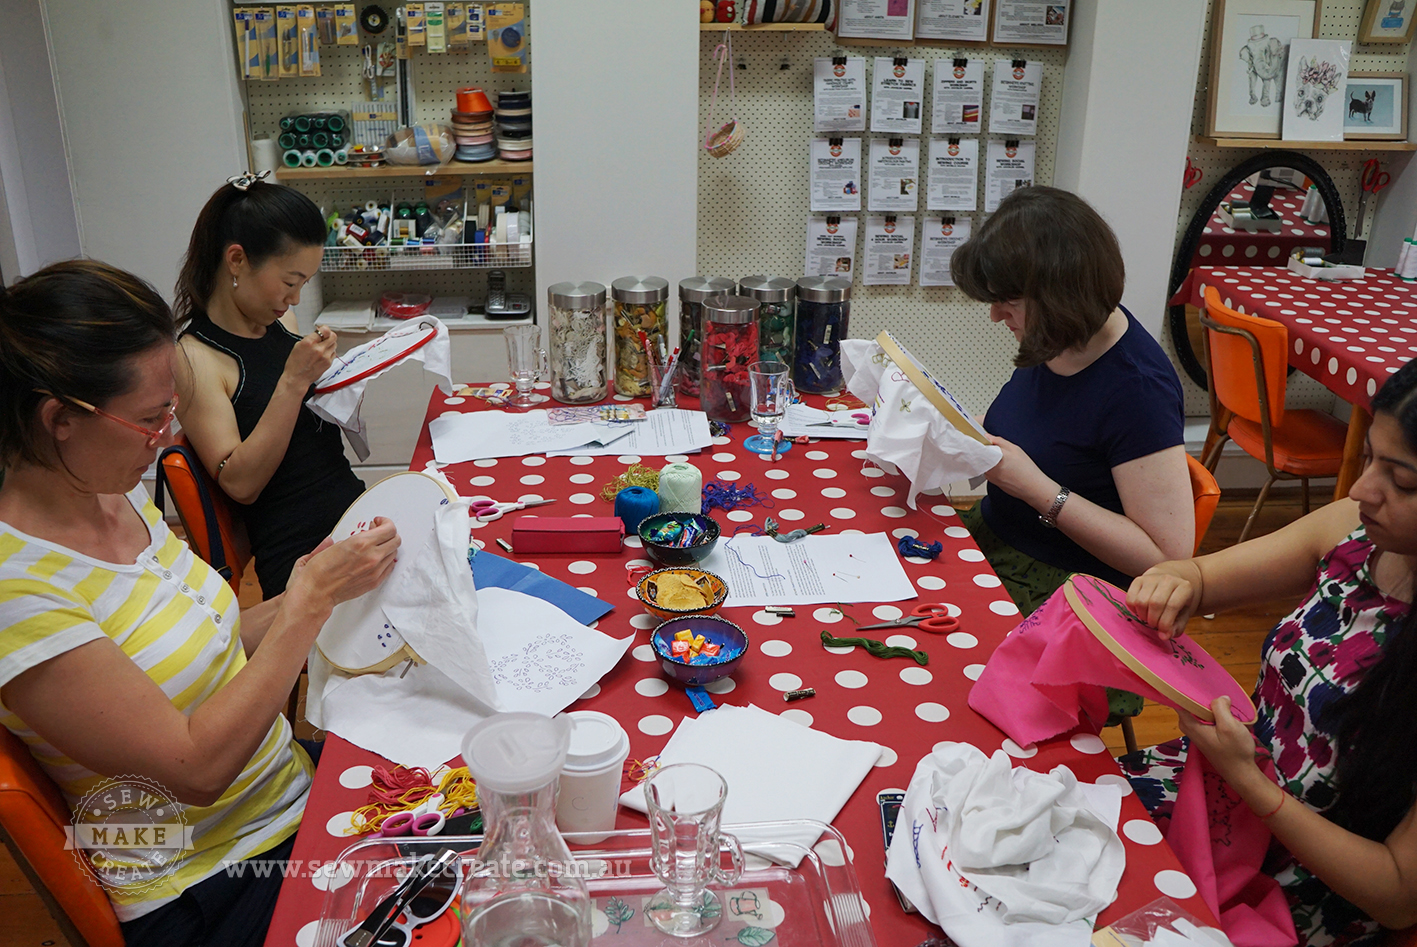 Beginners Hand Embroidery Class In Sydney